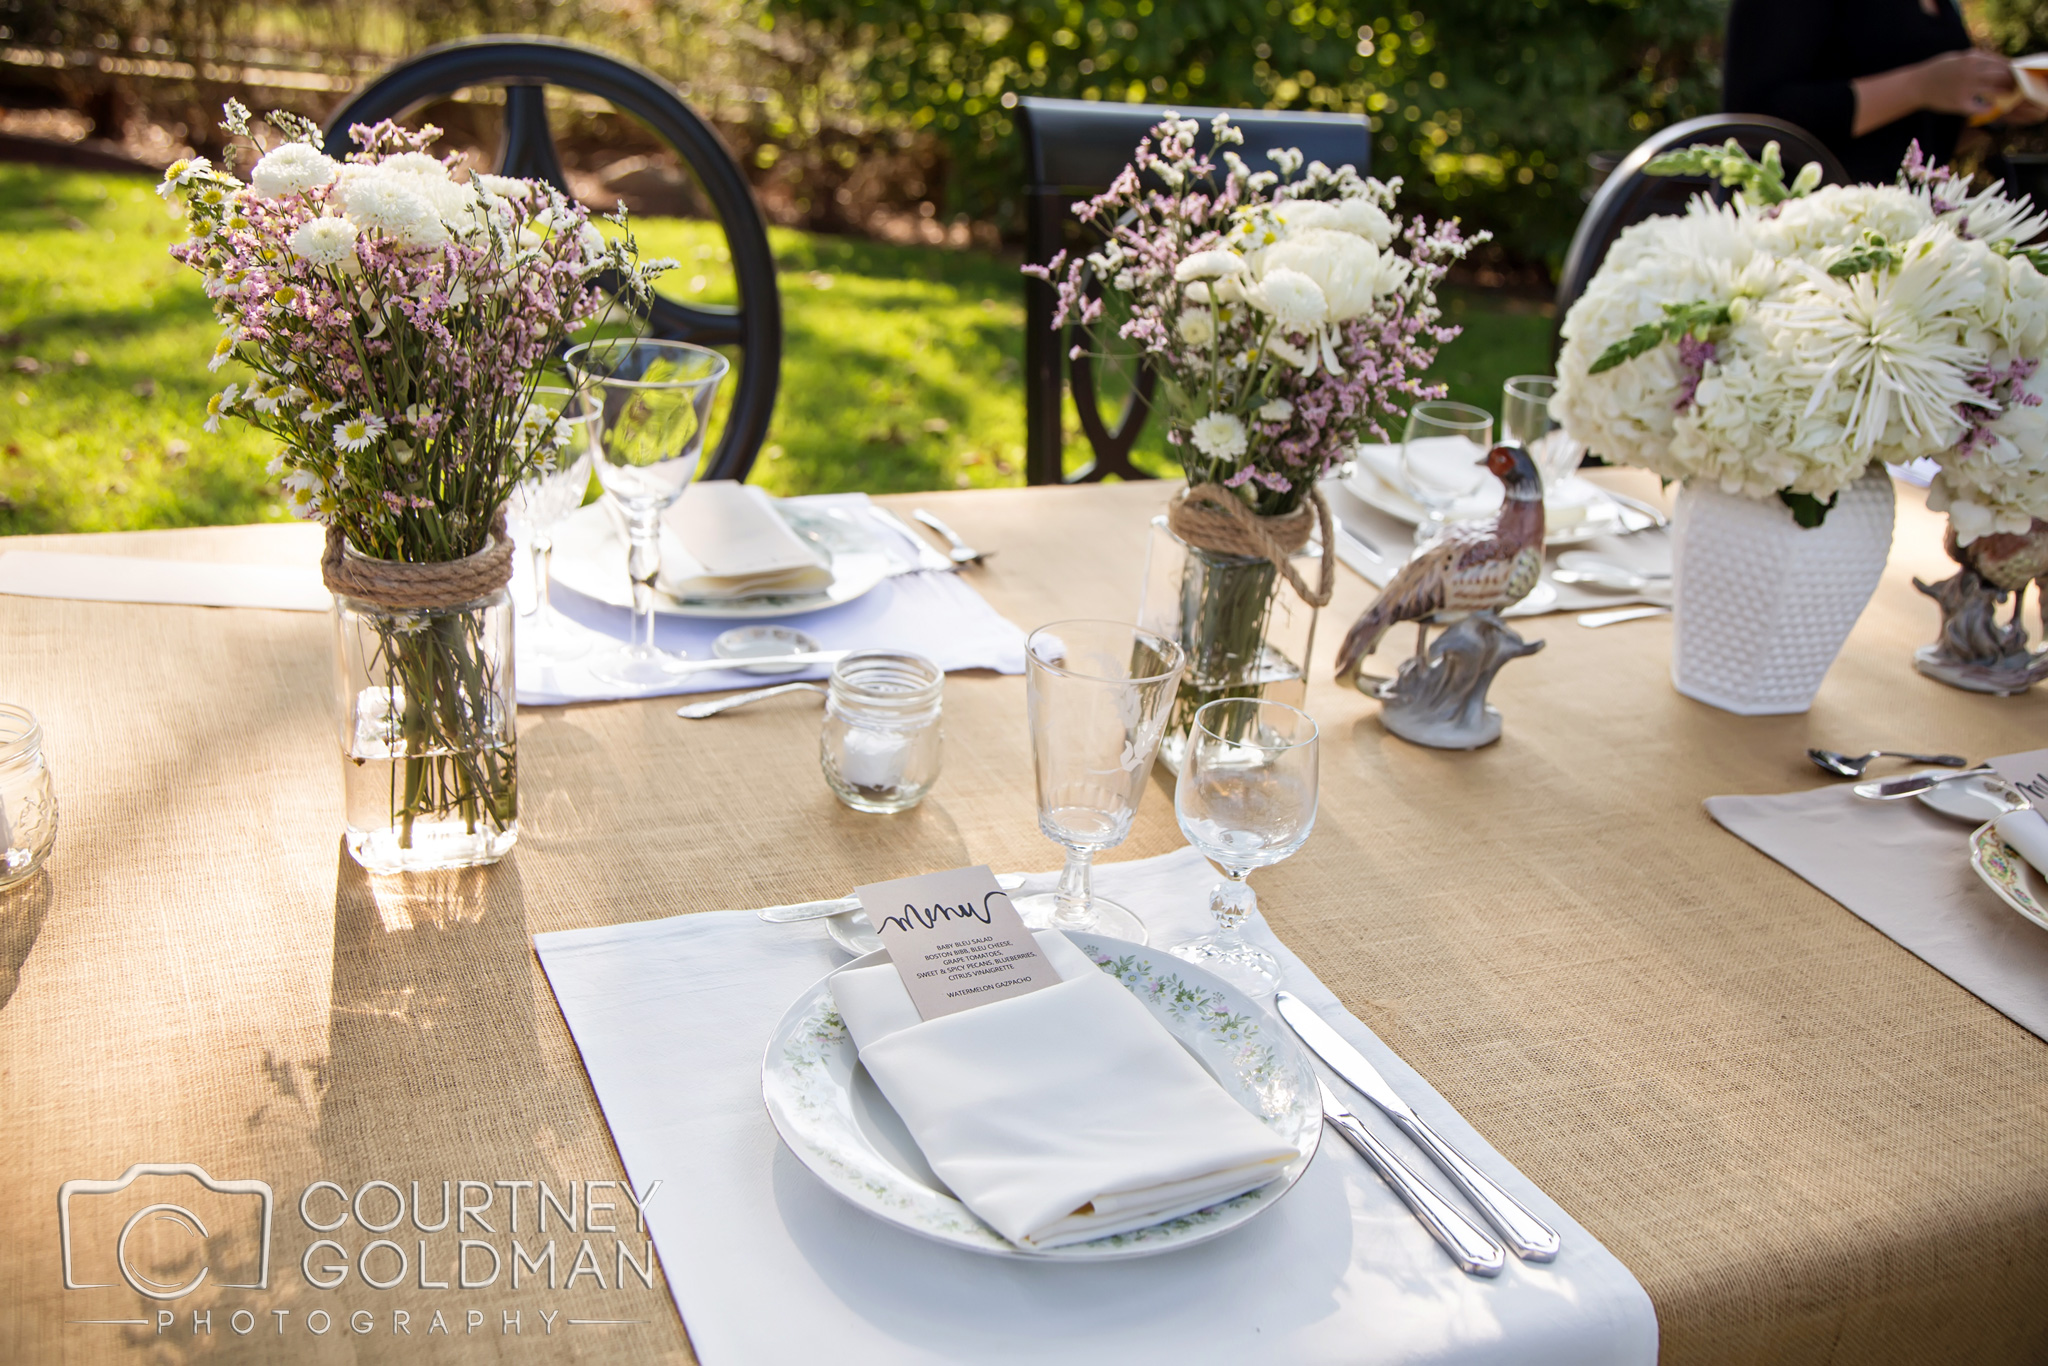 Backyard-Summer-Dinner-Birthday-in-Georgia-with-A-Divine-Event-by-Courtney-Goldman-Photography-05.jpg